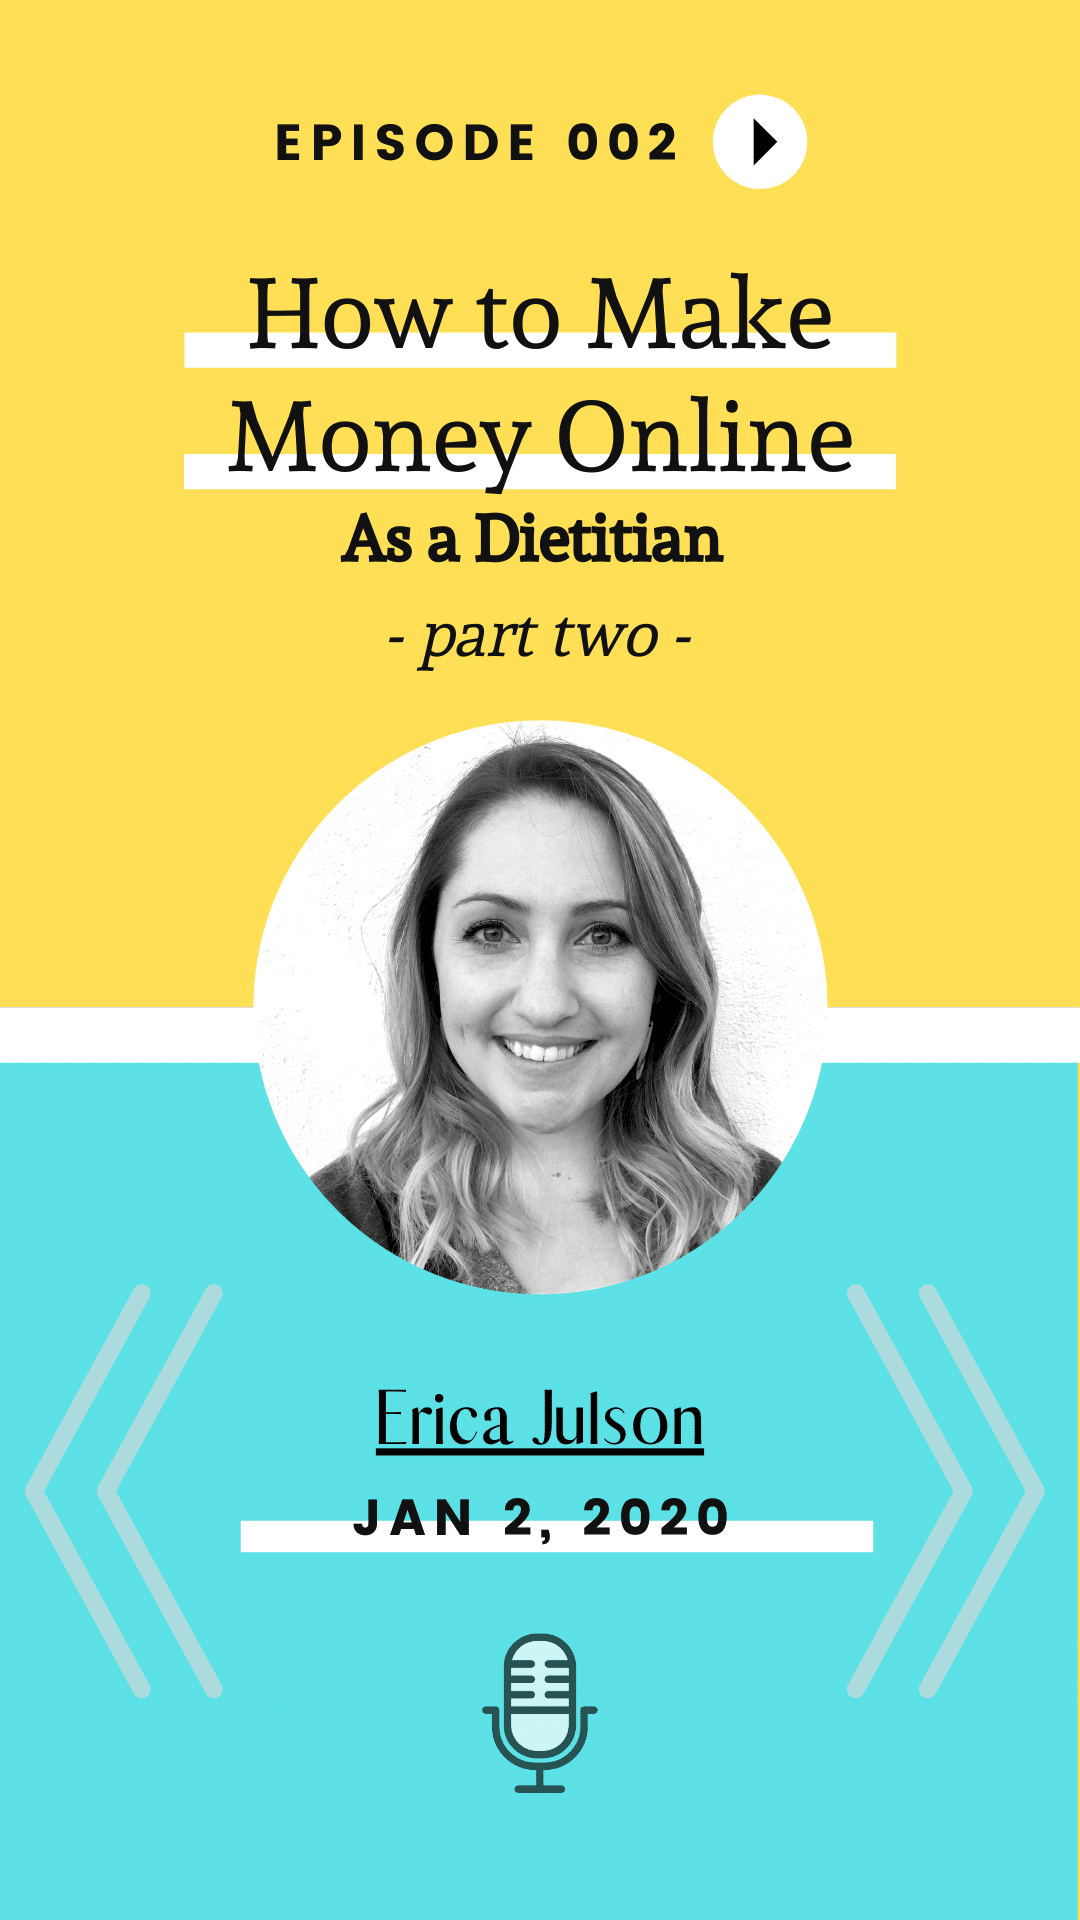 TURD002 How to Make Money Online As A Dietitian Part 2 Image